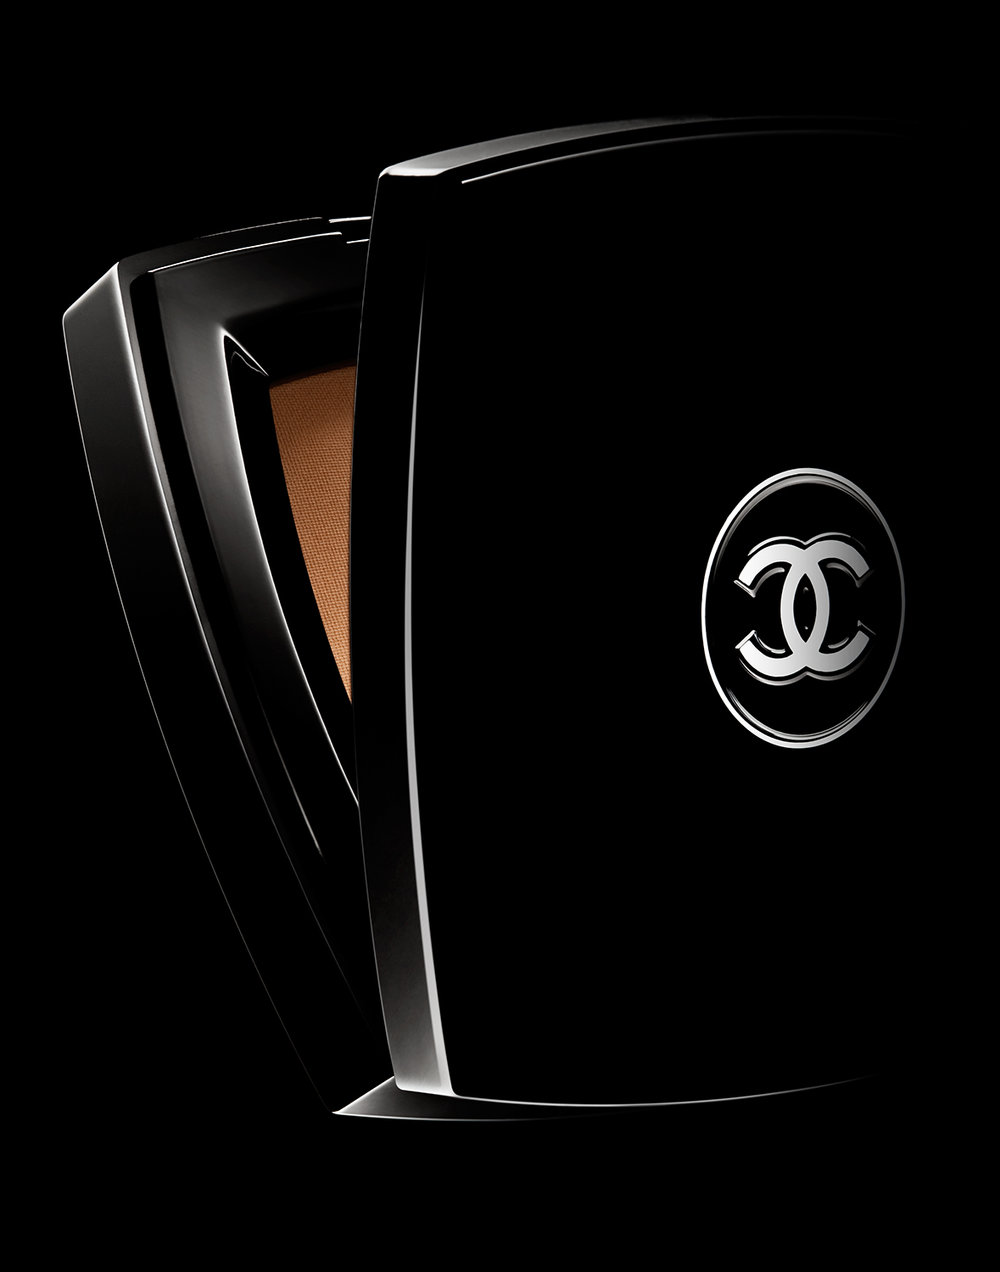 tom-medvedich-still-life-cosmetics-compact-chanel-black-01.jpg